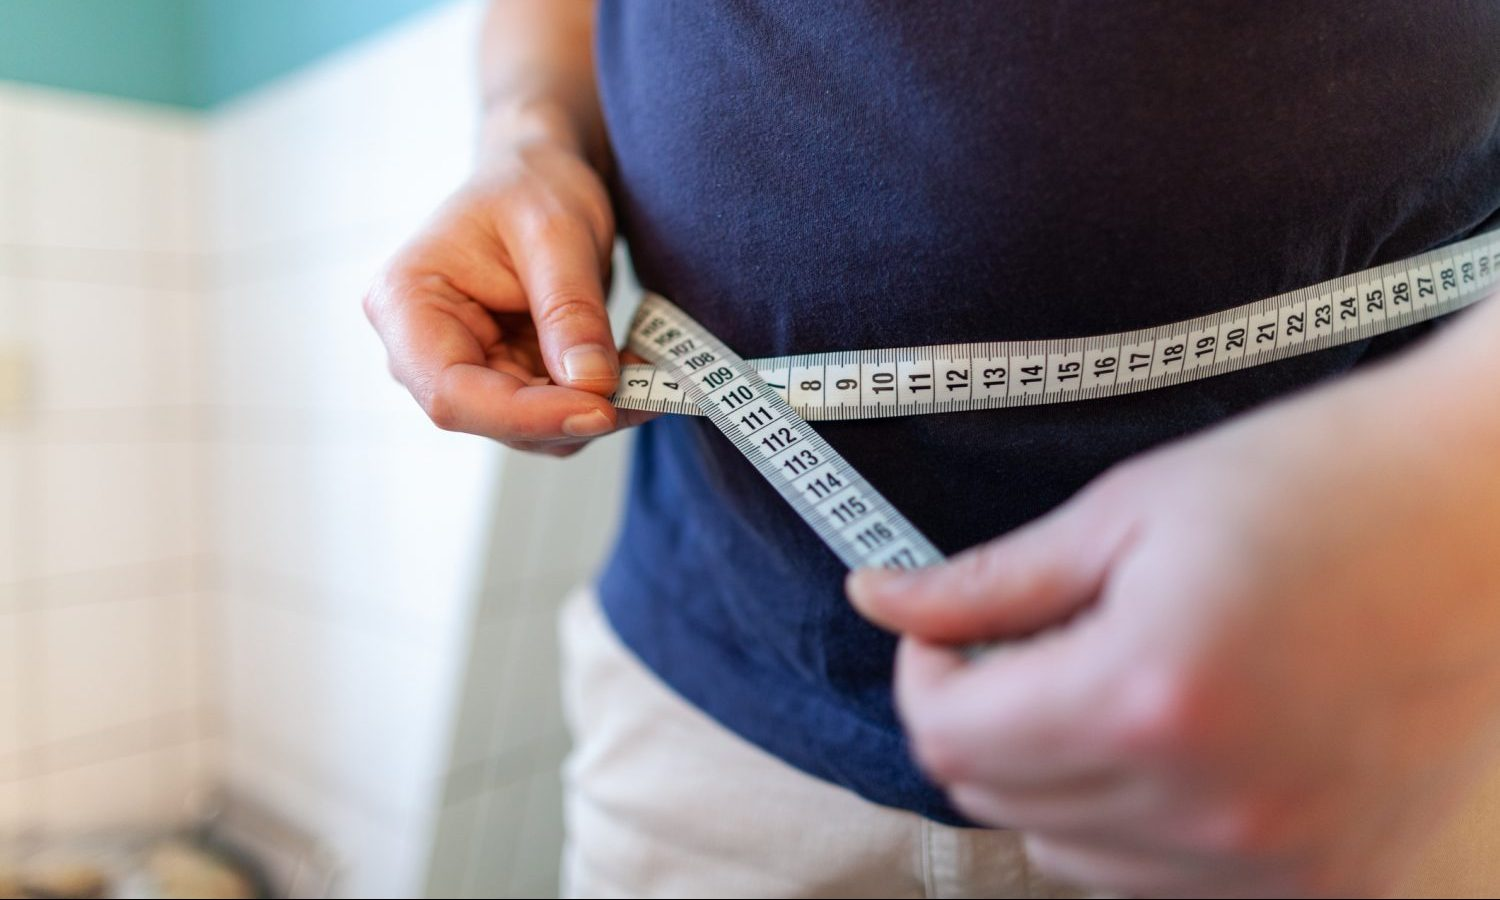 If Inflammation Causes Obesity, Can Cannabis Help Break The Vicious Cycle?